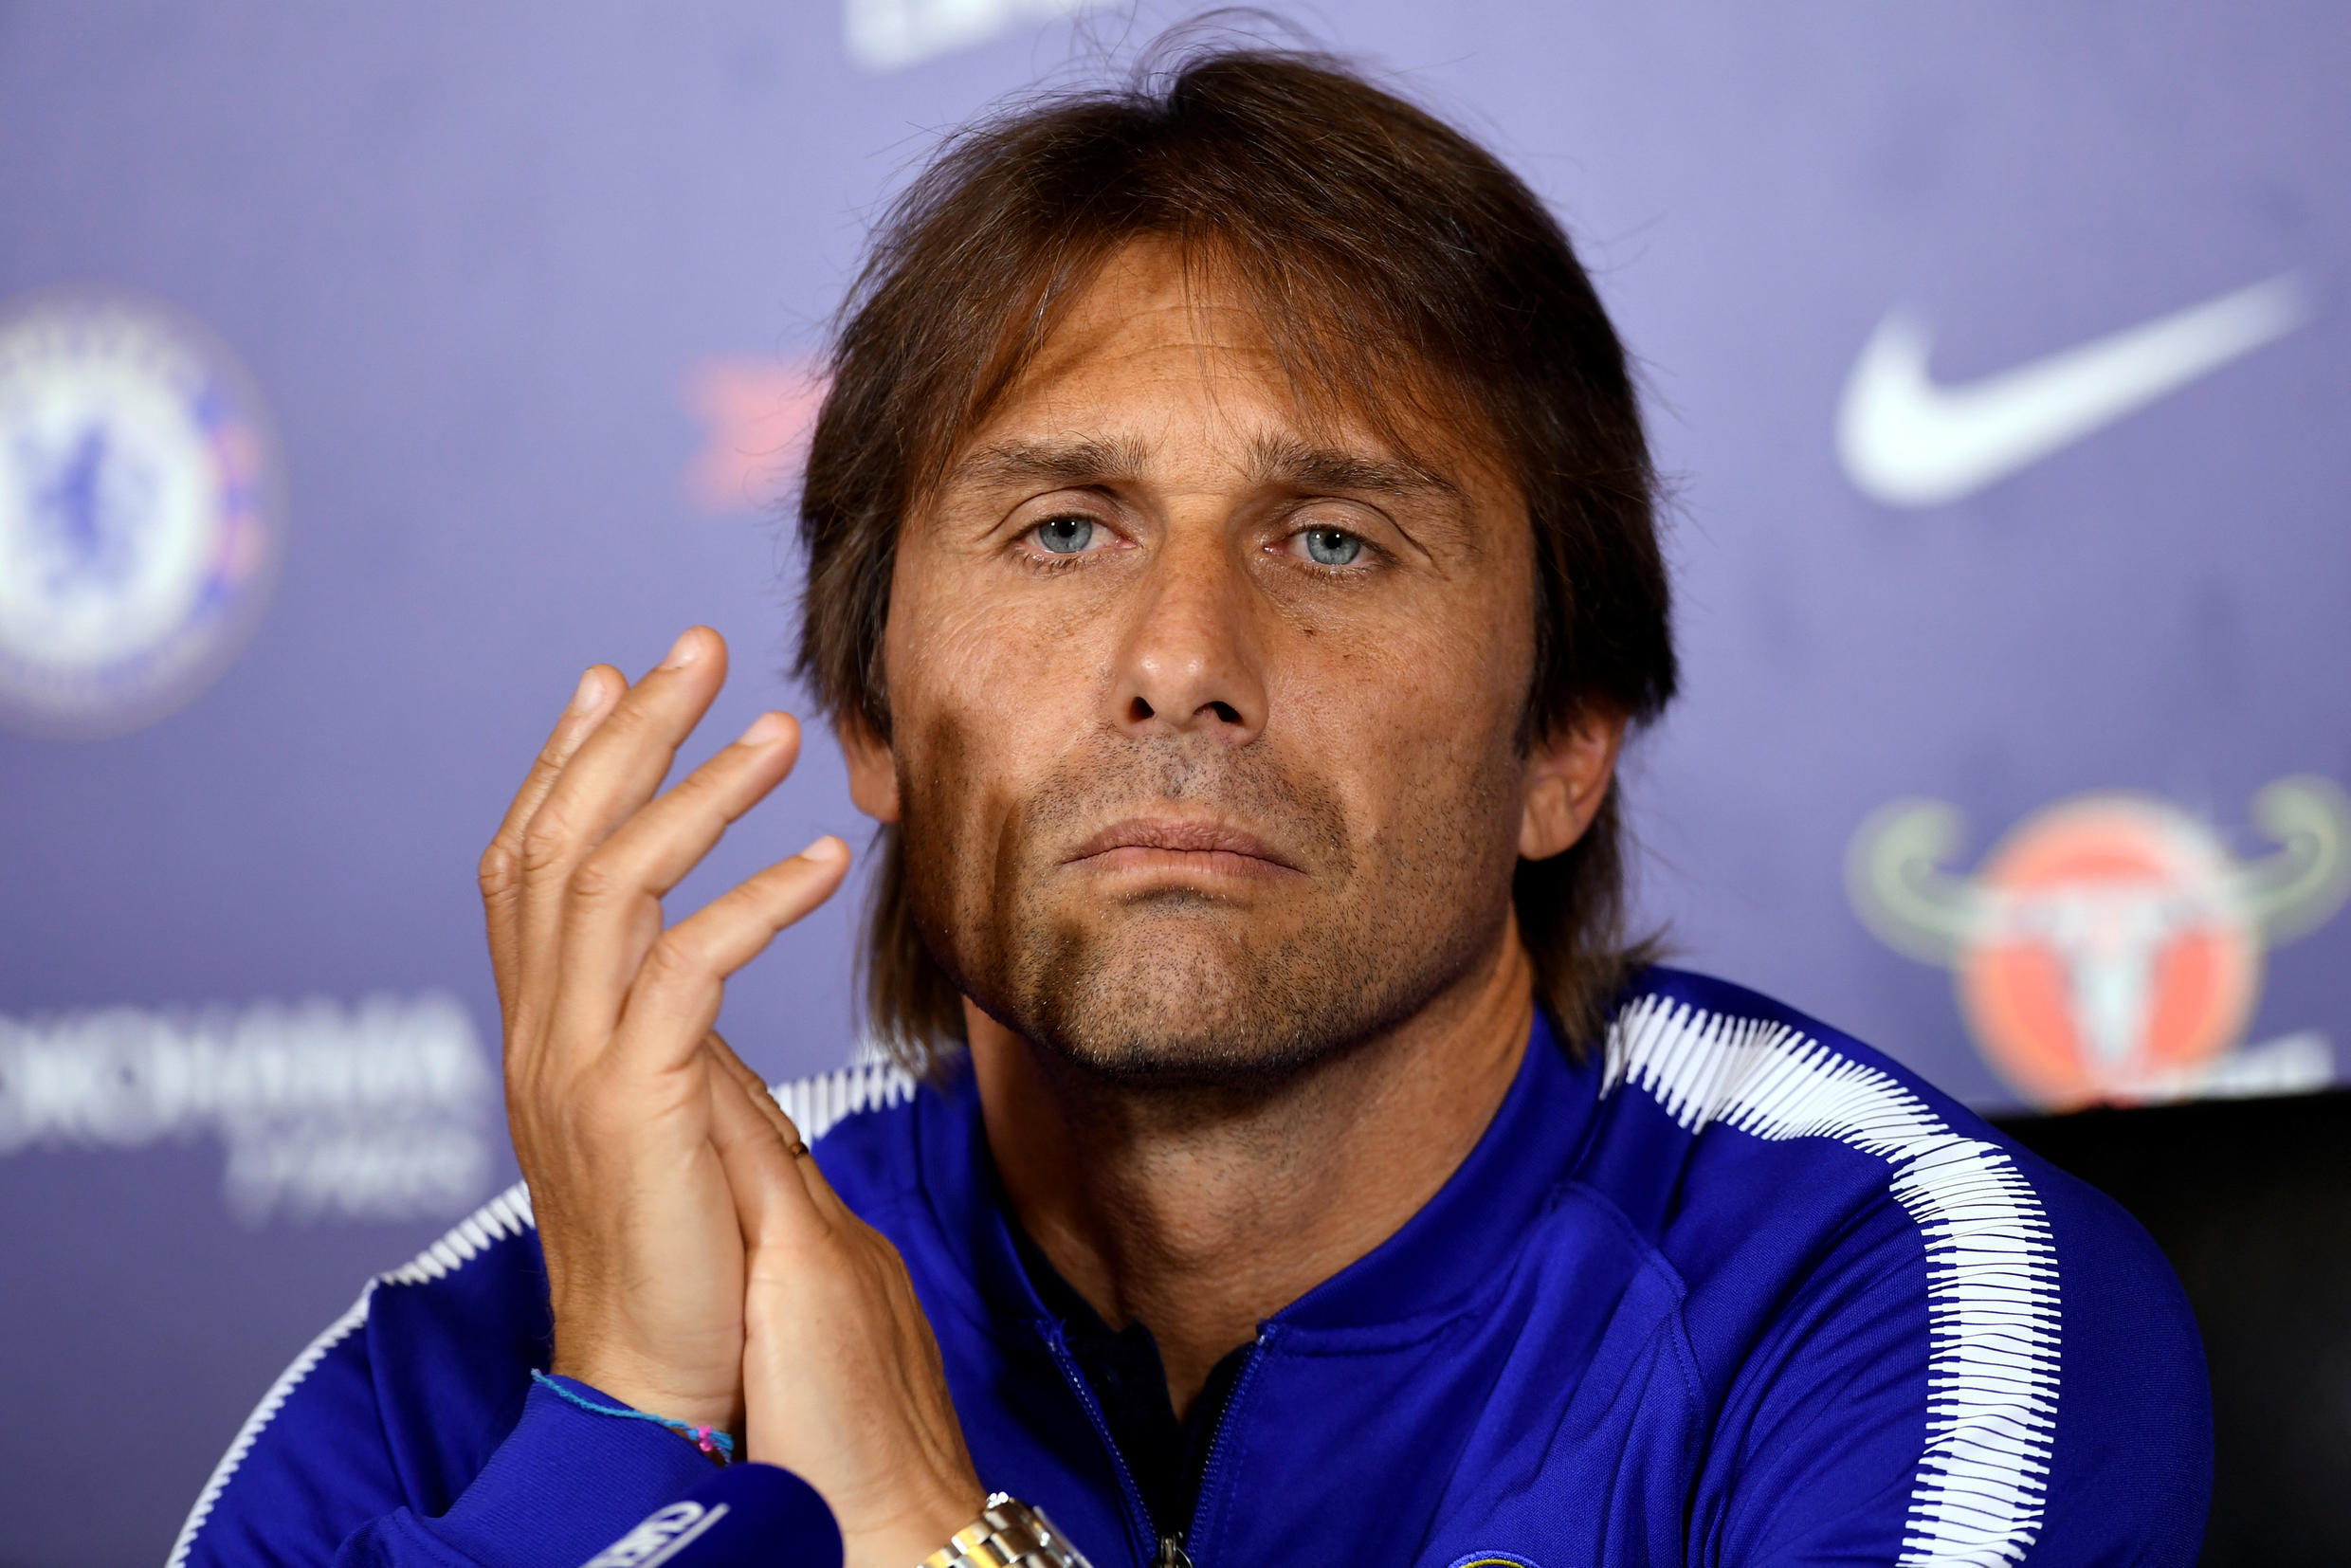 Antonio Conte led Chelsea to the Premier League title in his first season in charge at Stamford Bridge.